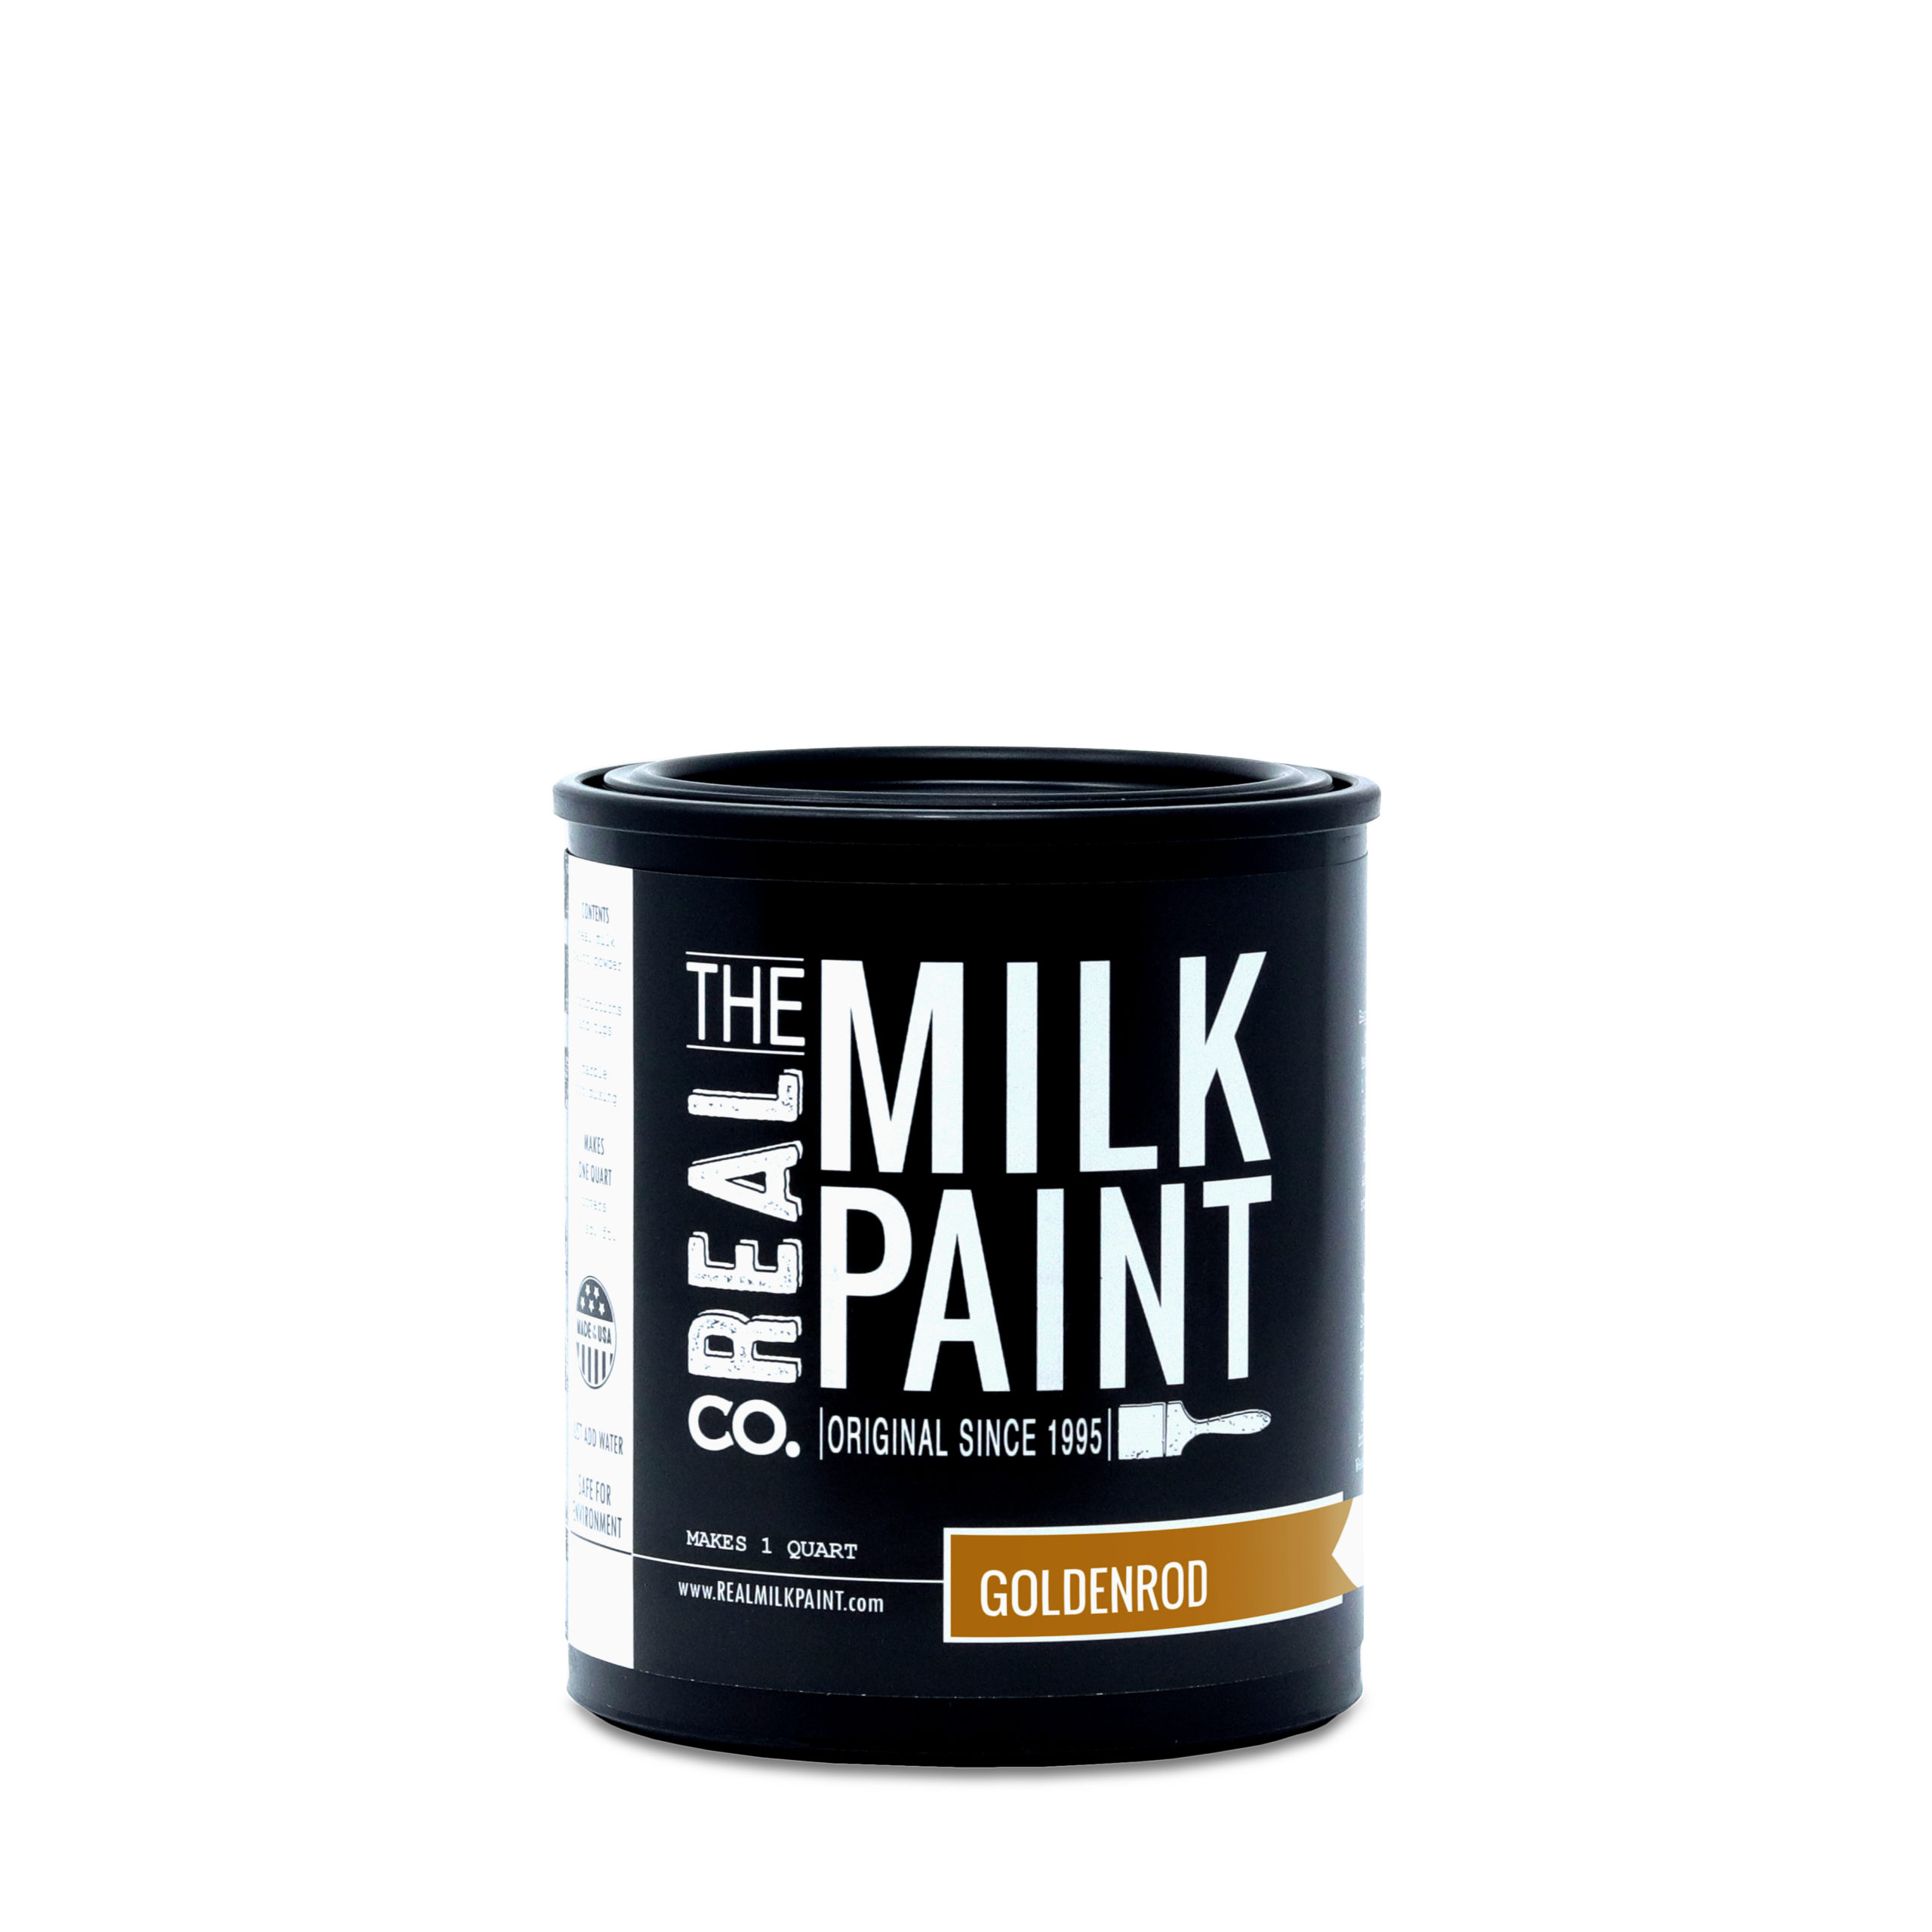 The Real Milk Paint Co.